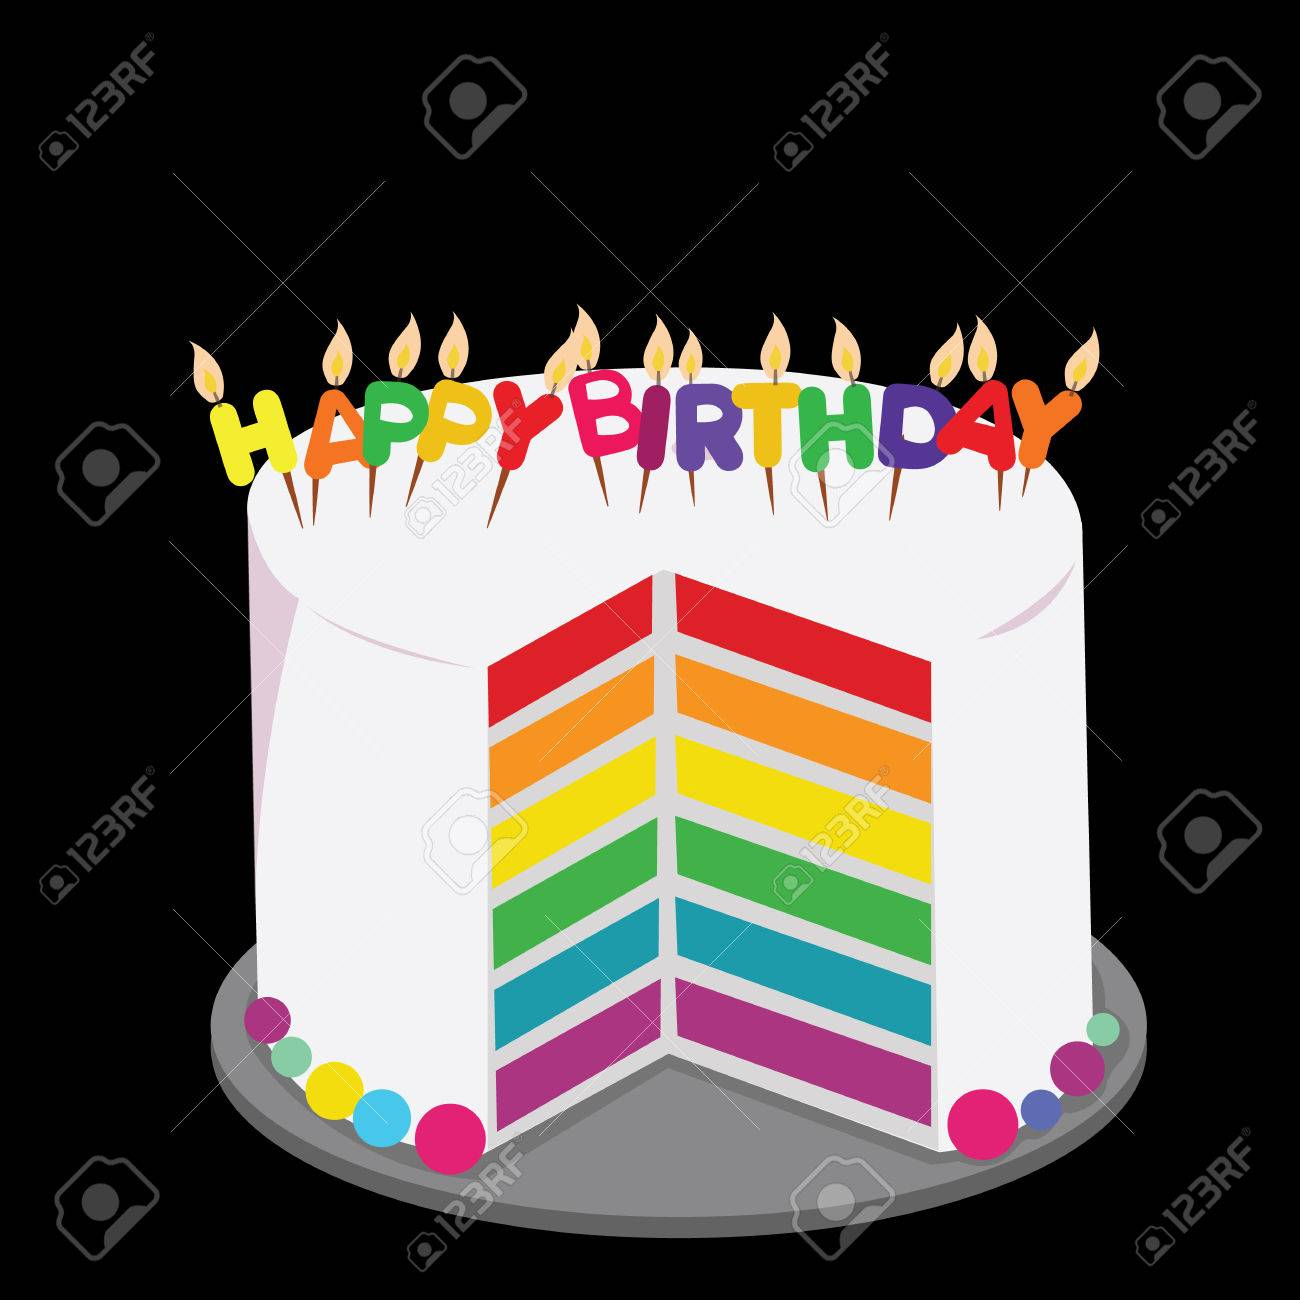 Rainbow Cake Decorated With Colorful Birthday Candles Concept Stock Vector